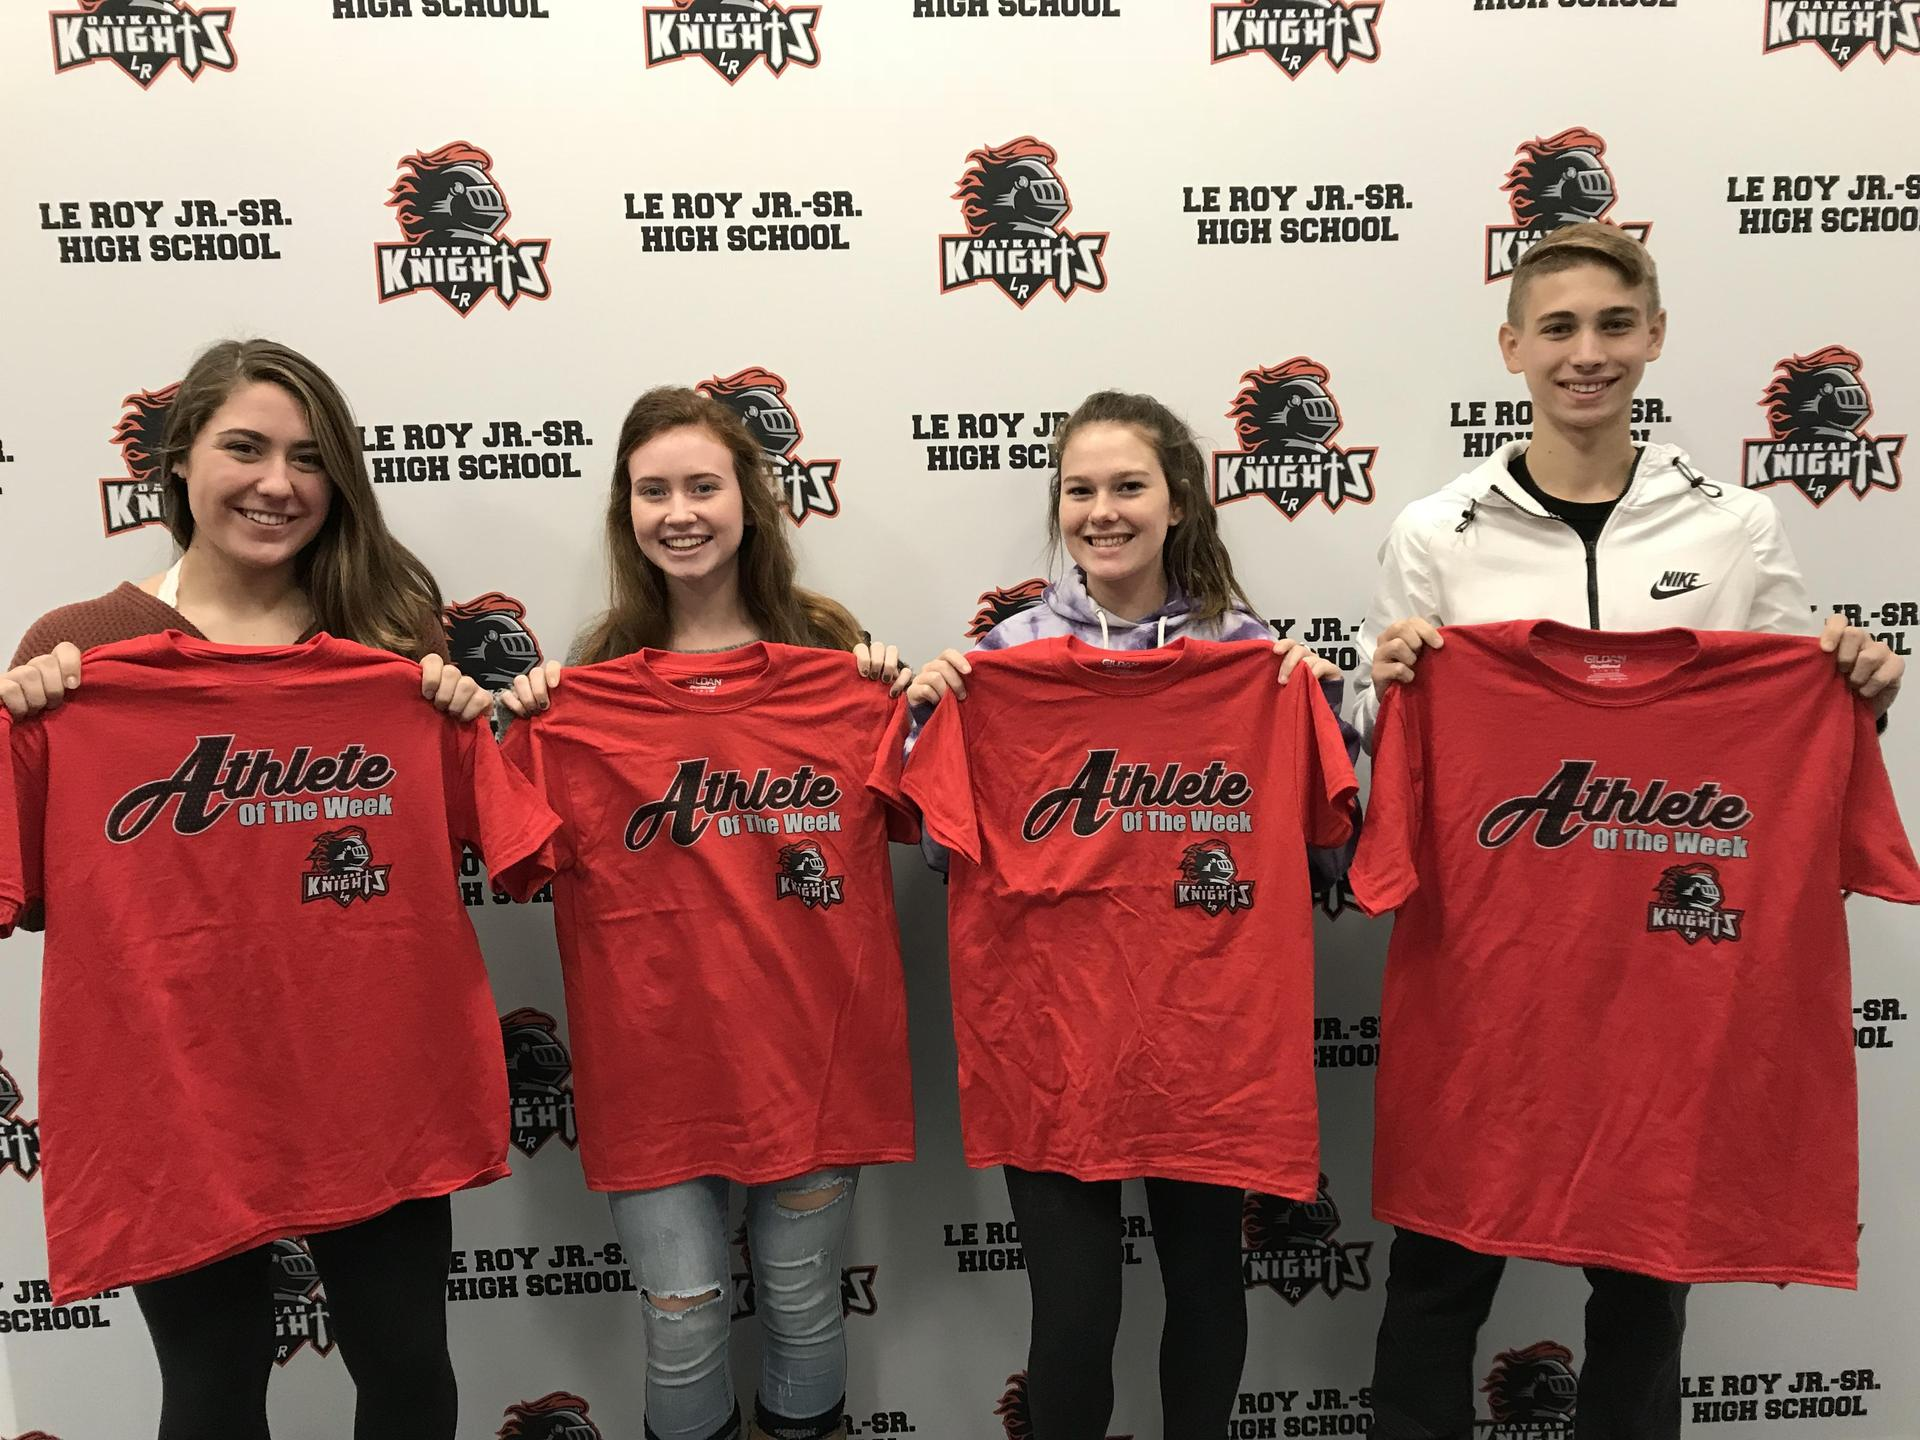 Athletes of the Week - K Carmichael, M Cone, K Fussell, and N Vallese